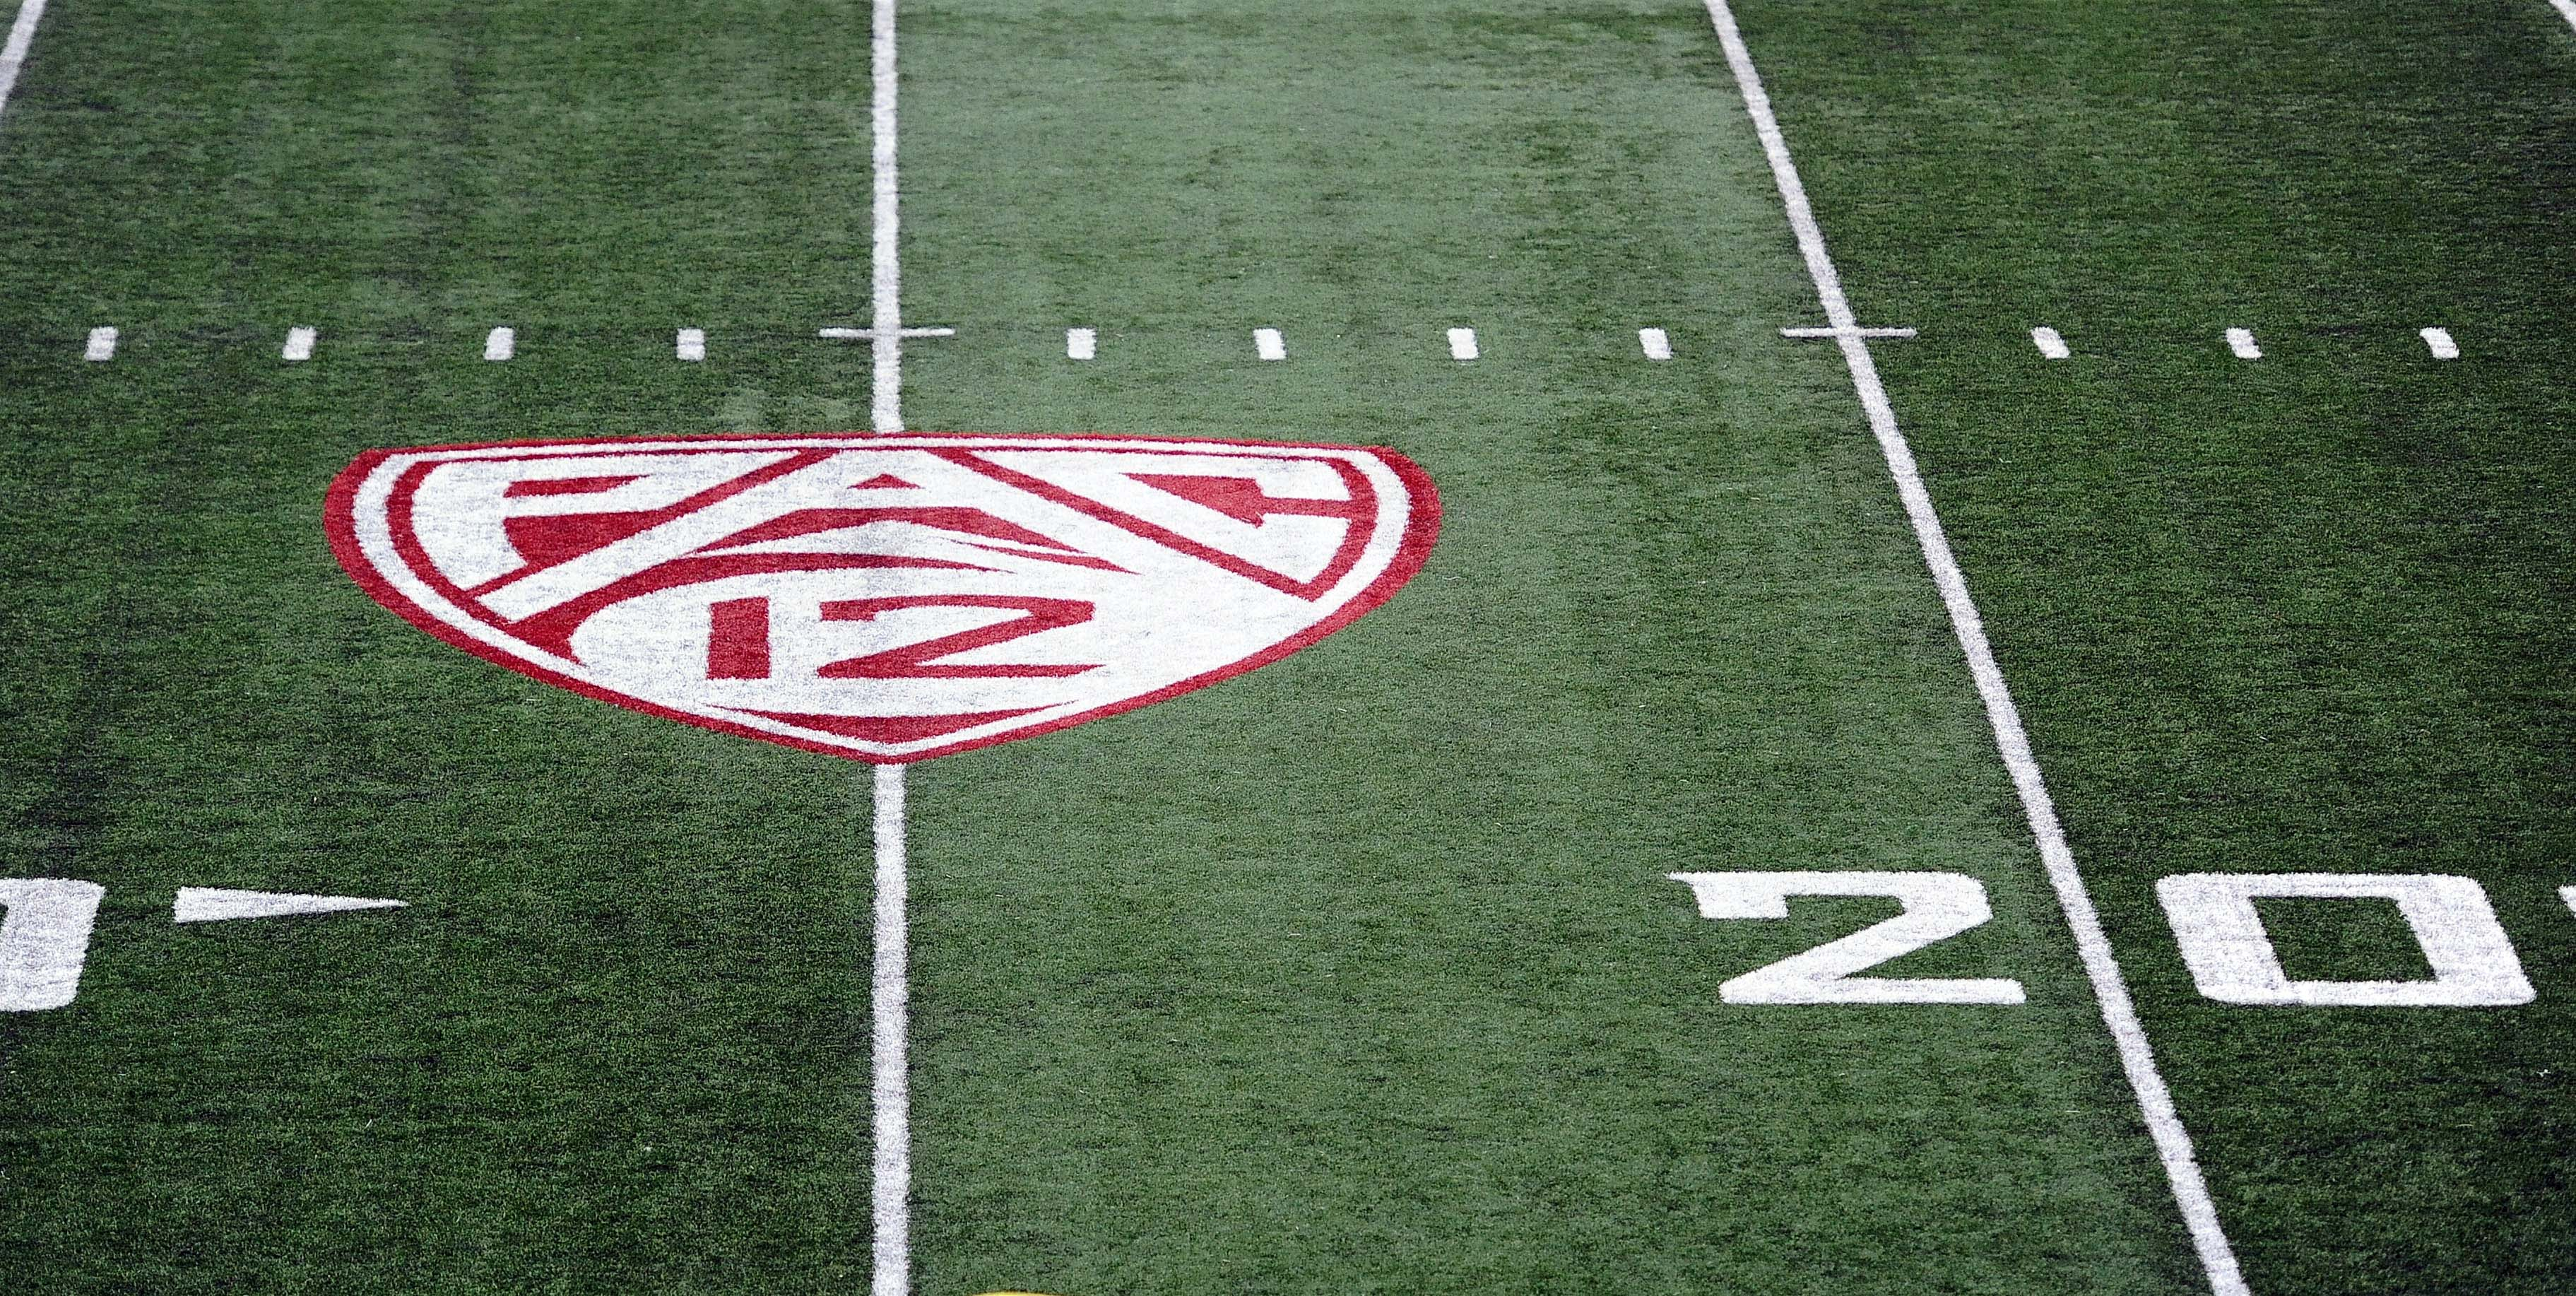 Pac-12 football power rankings: Bad week especially for South division